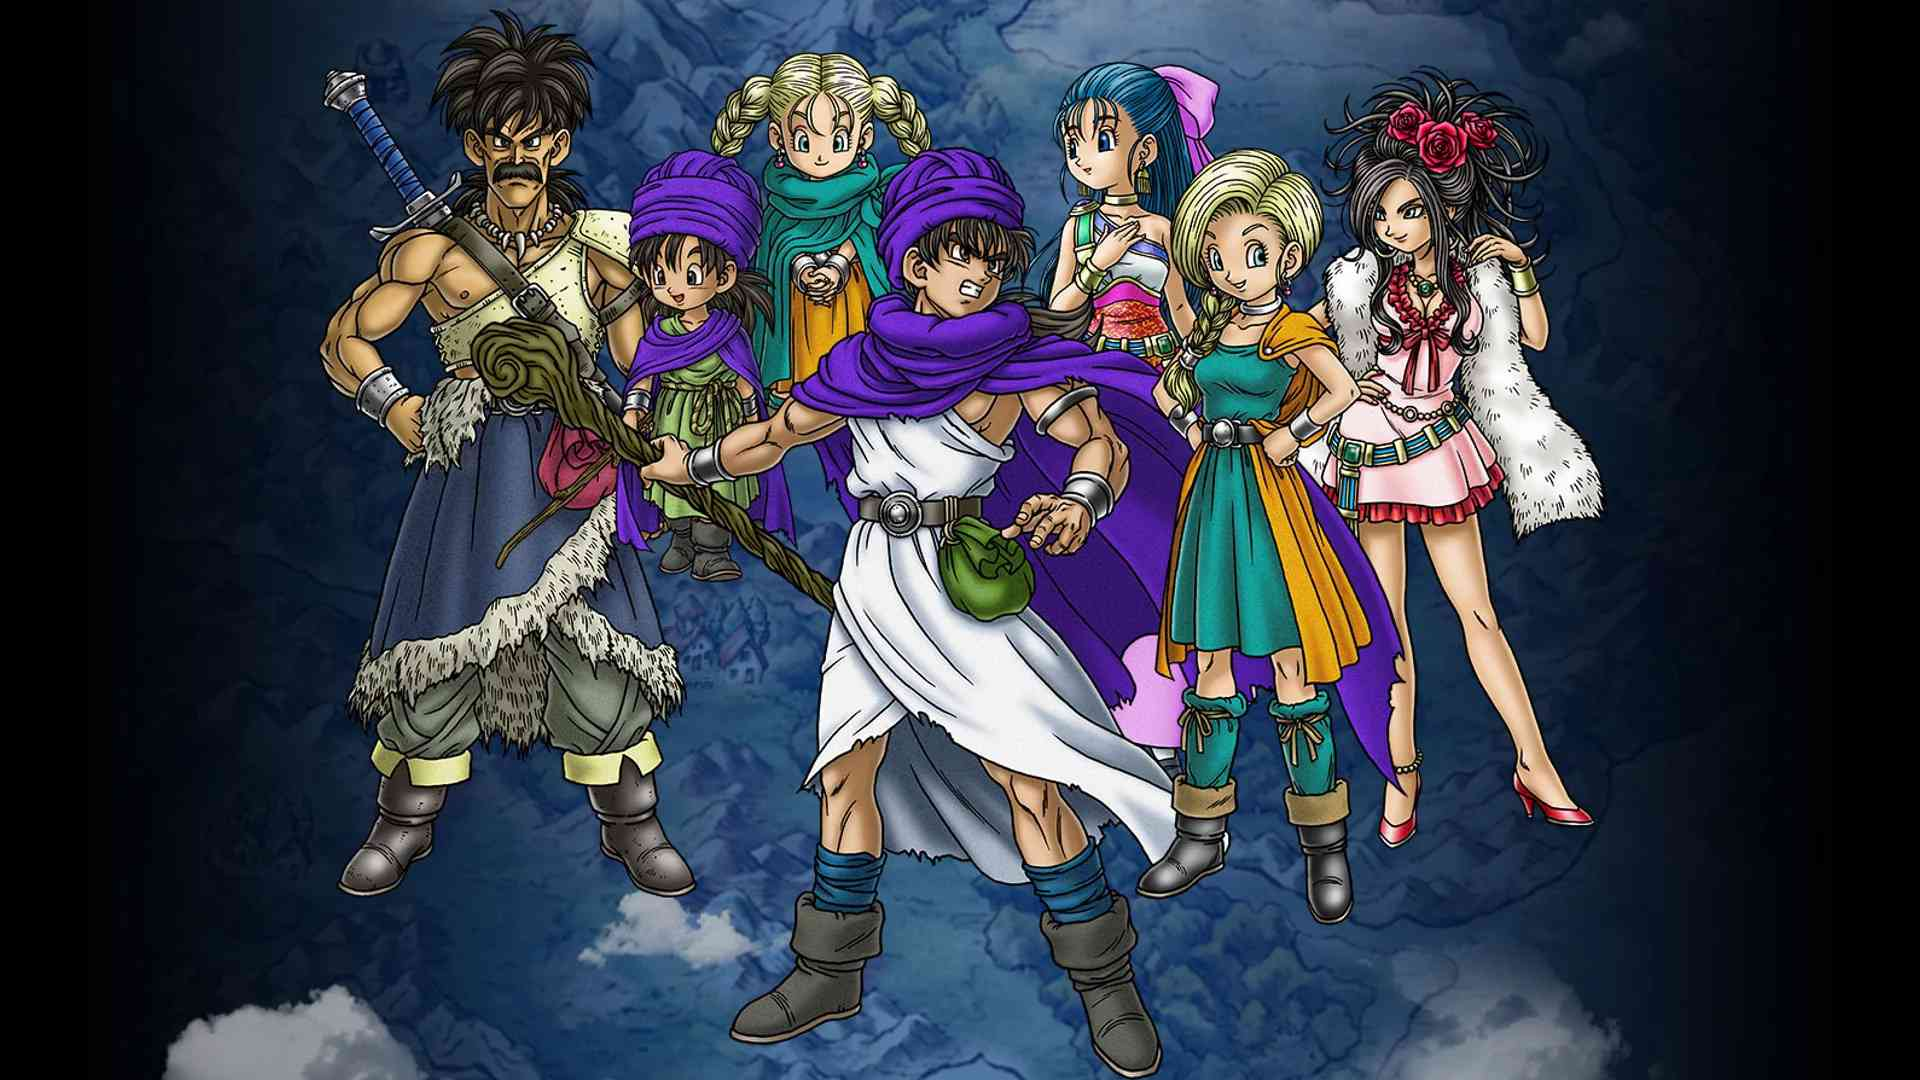 Character concept art from Dragon Quest V